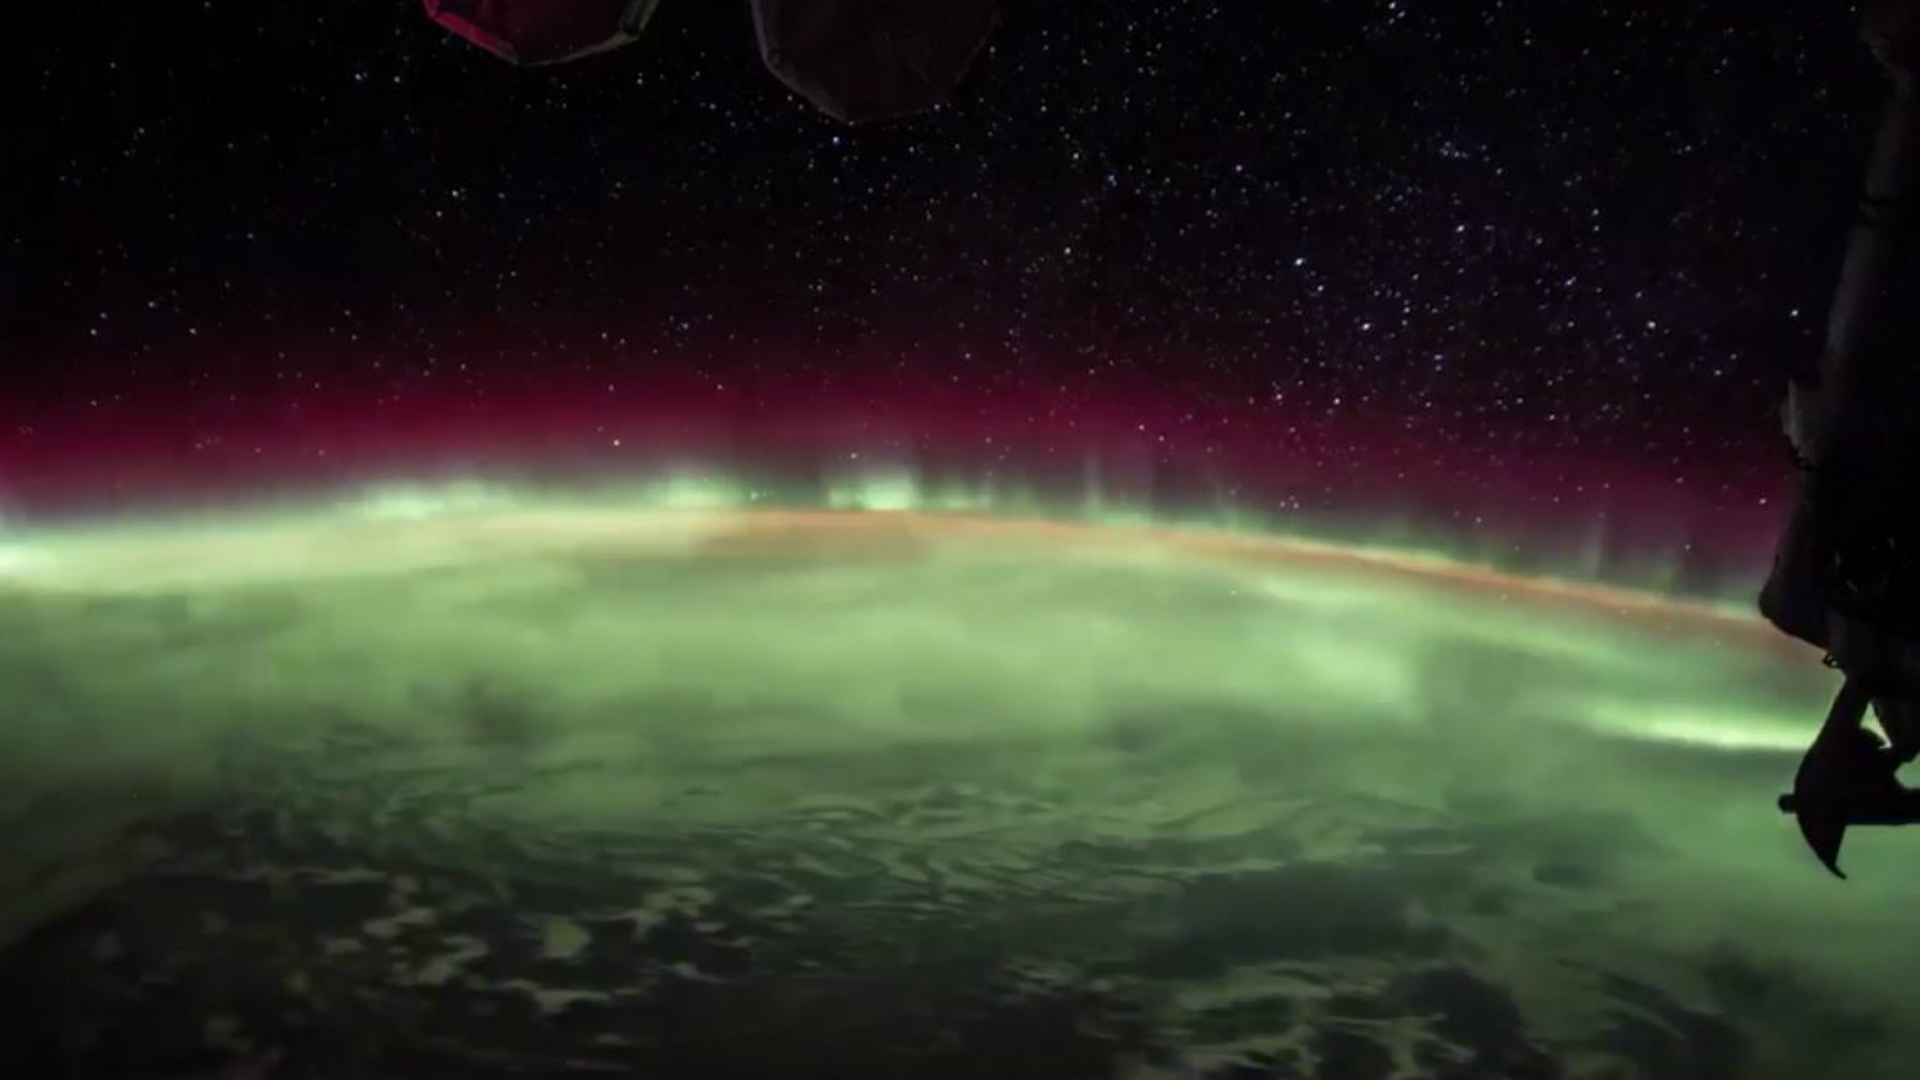 The Aurora Australis captured from the International Space Station (@Astro2fish/PA)